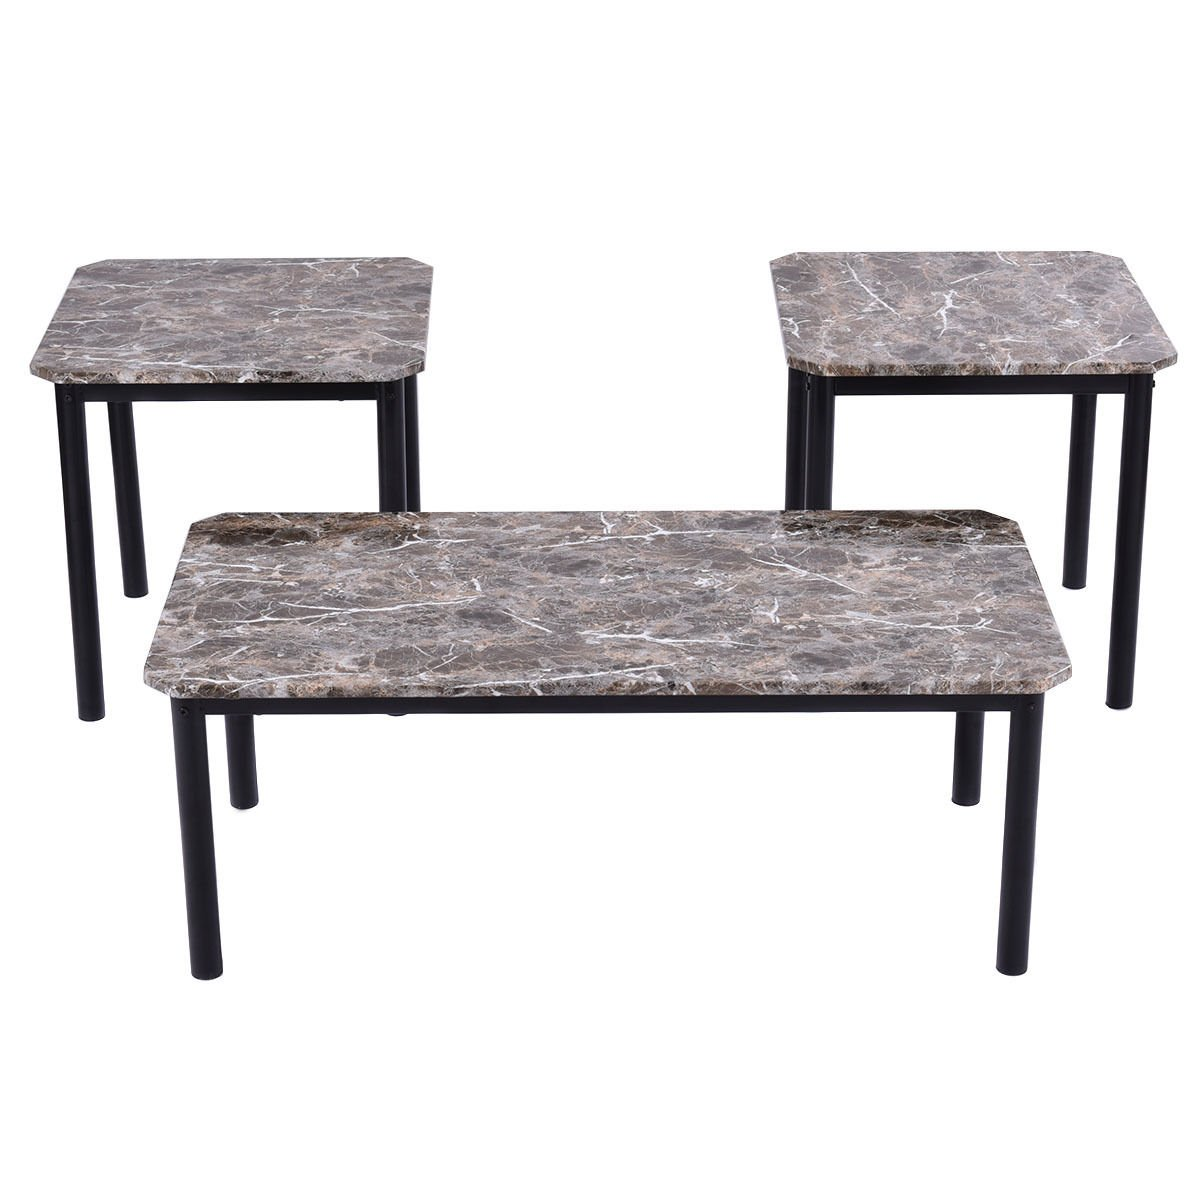 Tangkula 3 Piece Marble-Look Top Coffee and Ende Table set Living Room Furniture Decor